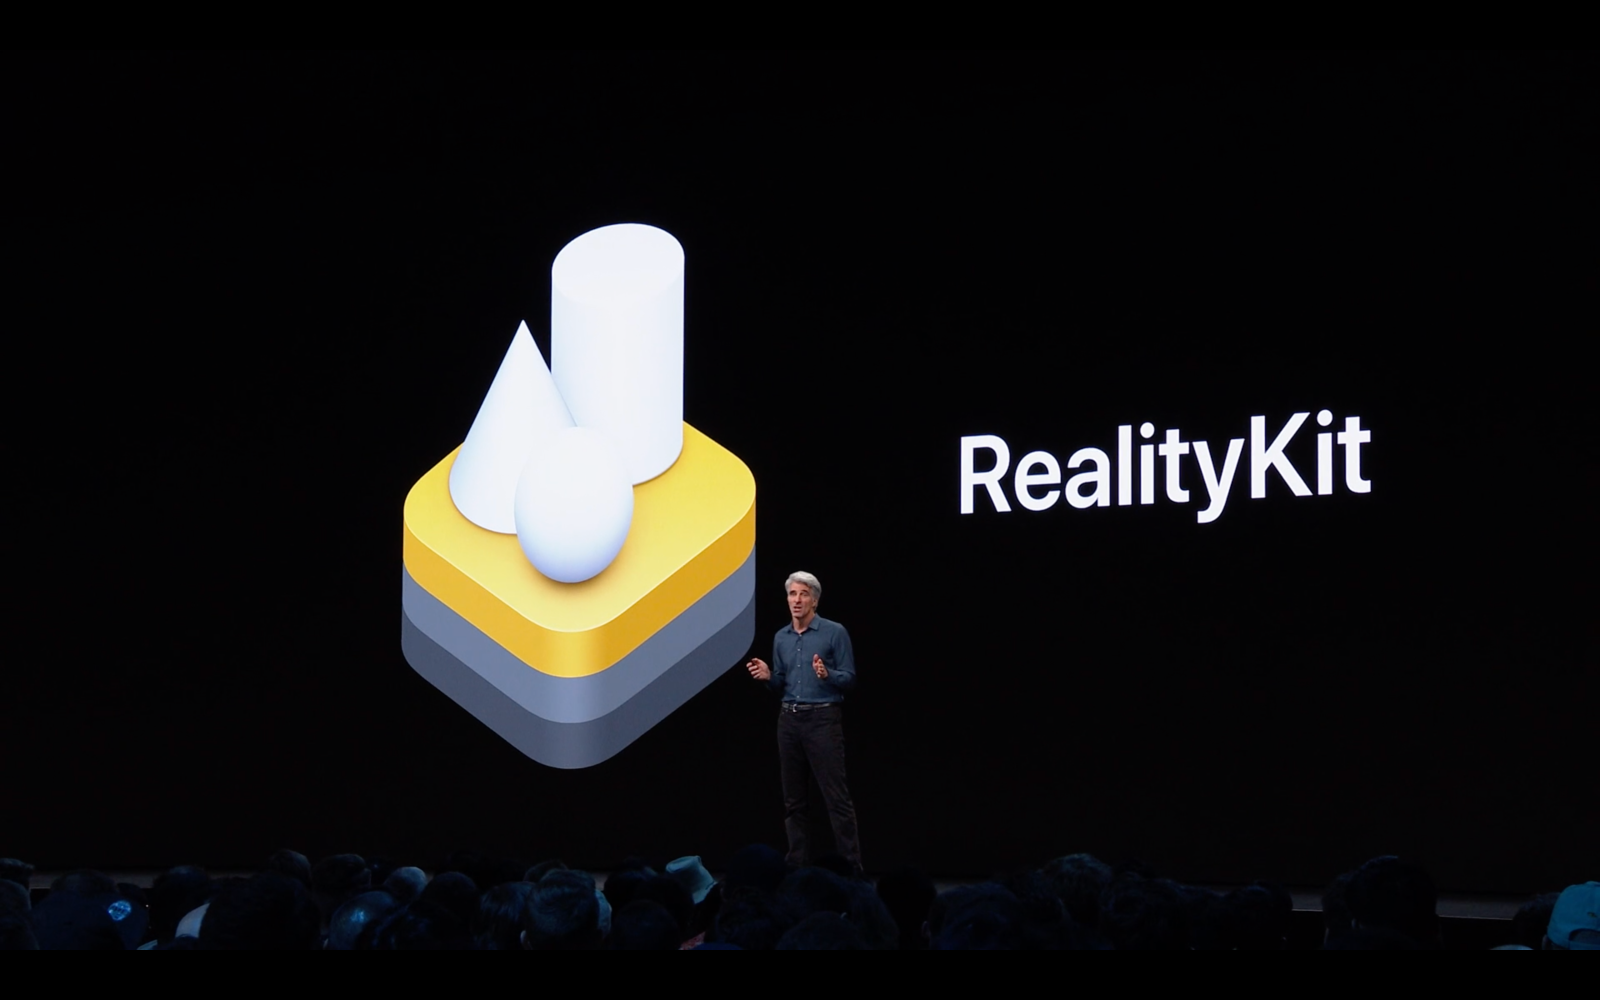 Apple announces RealityKit and Reality Composer